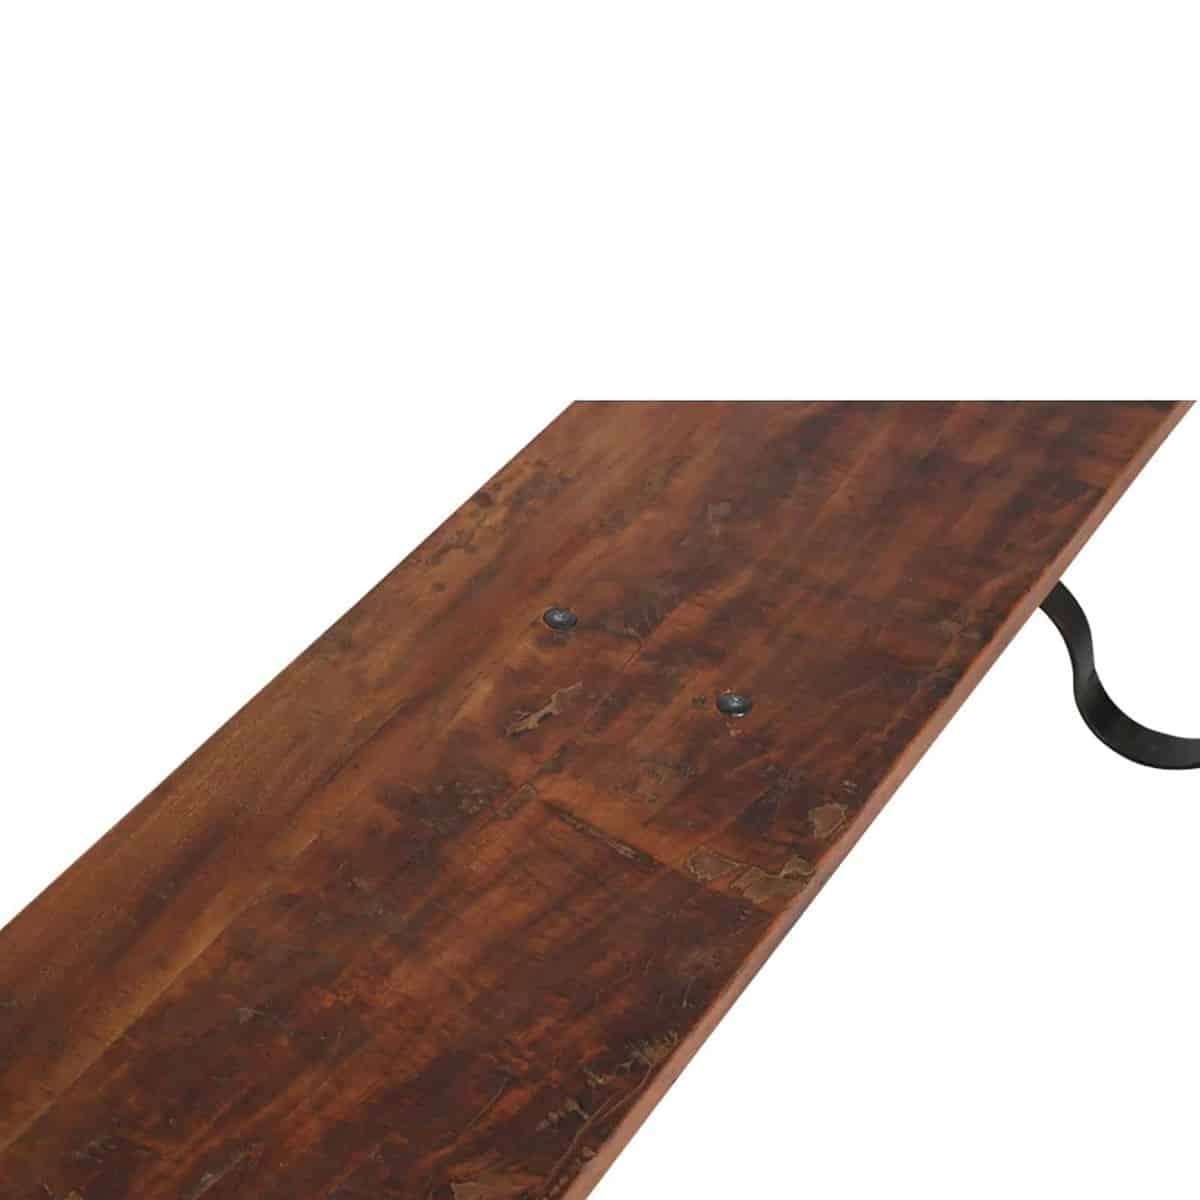 factory bench table top